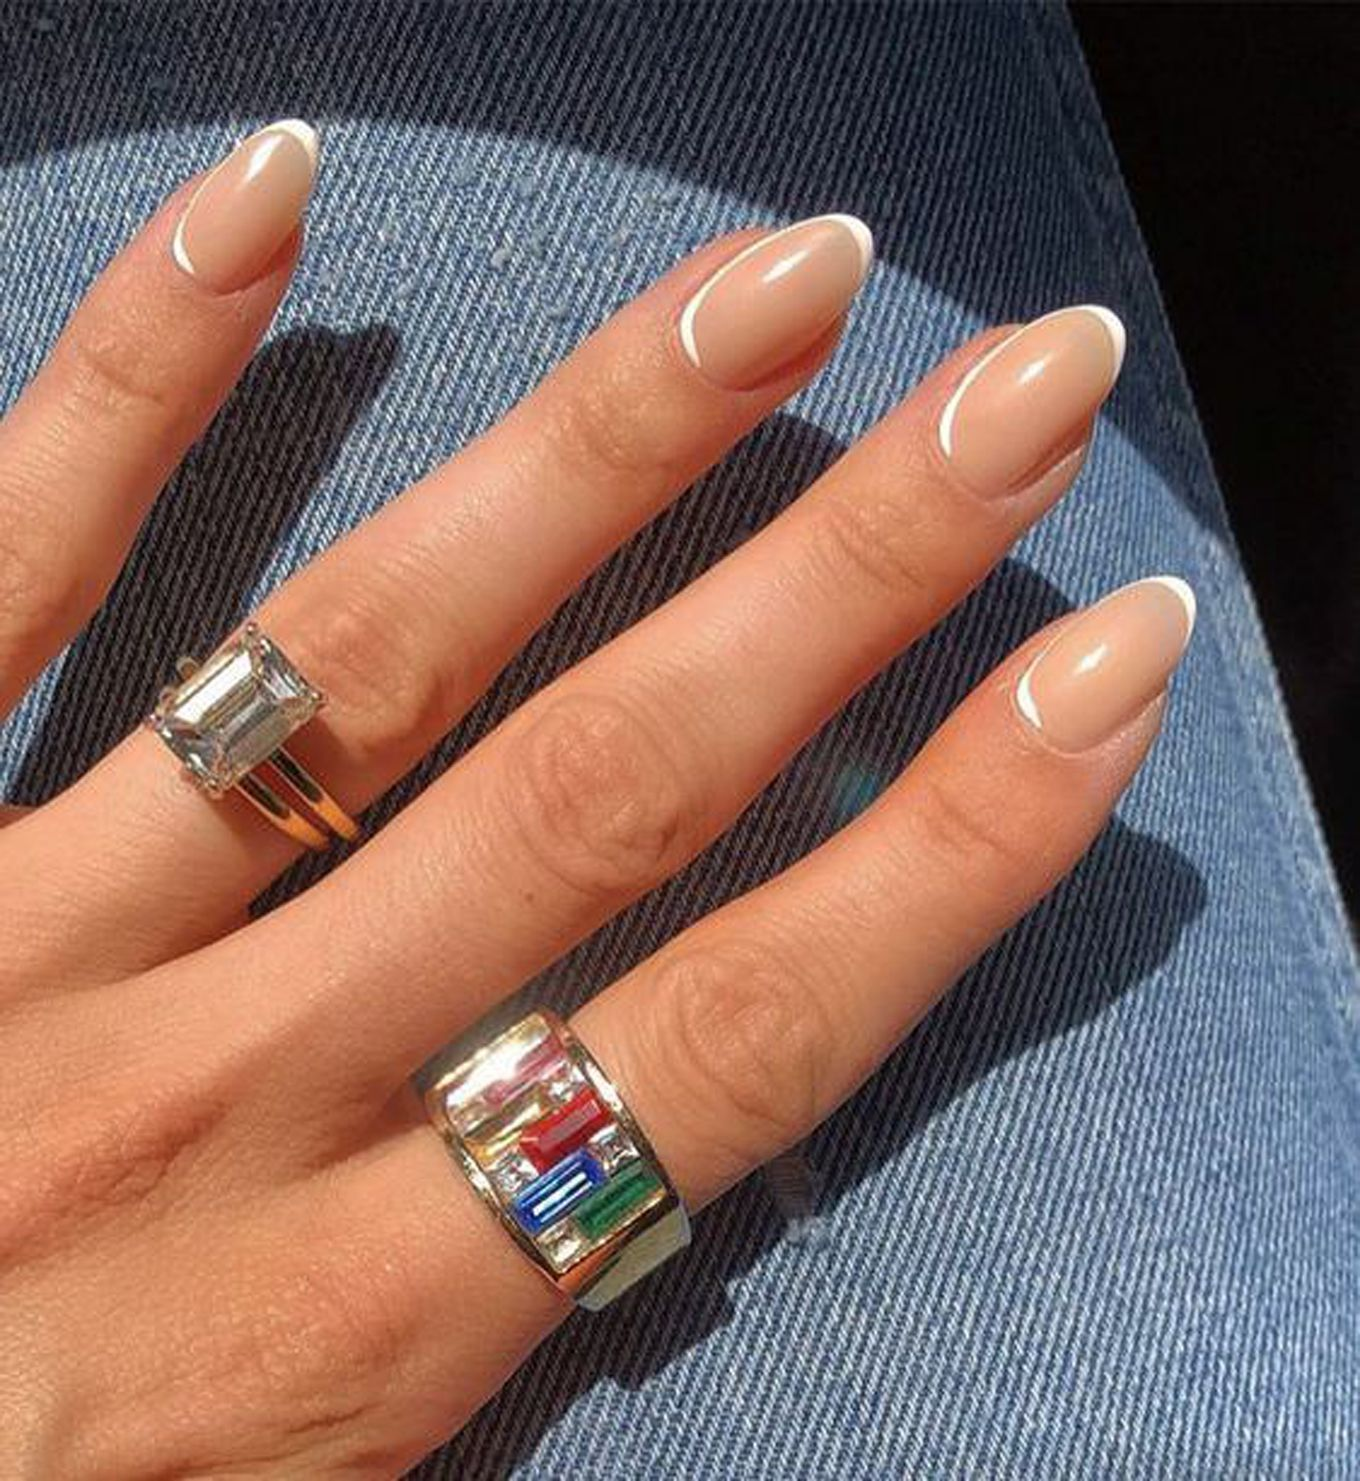 8 Manis That Have Nailed It This Summer